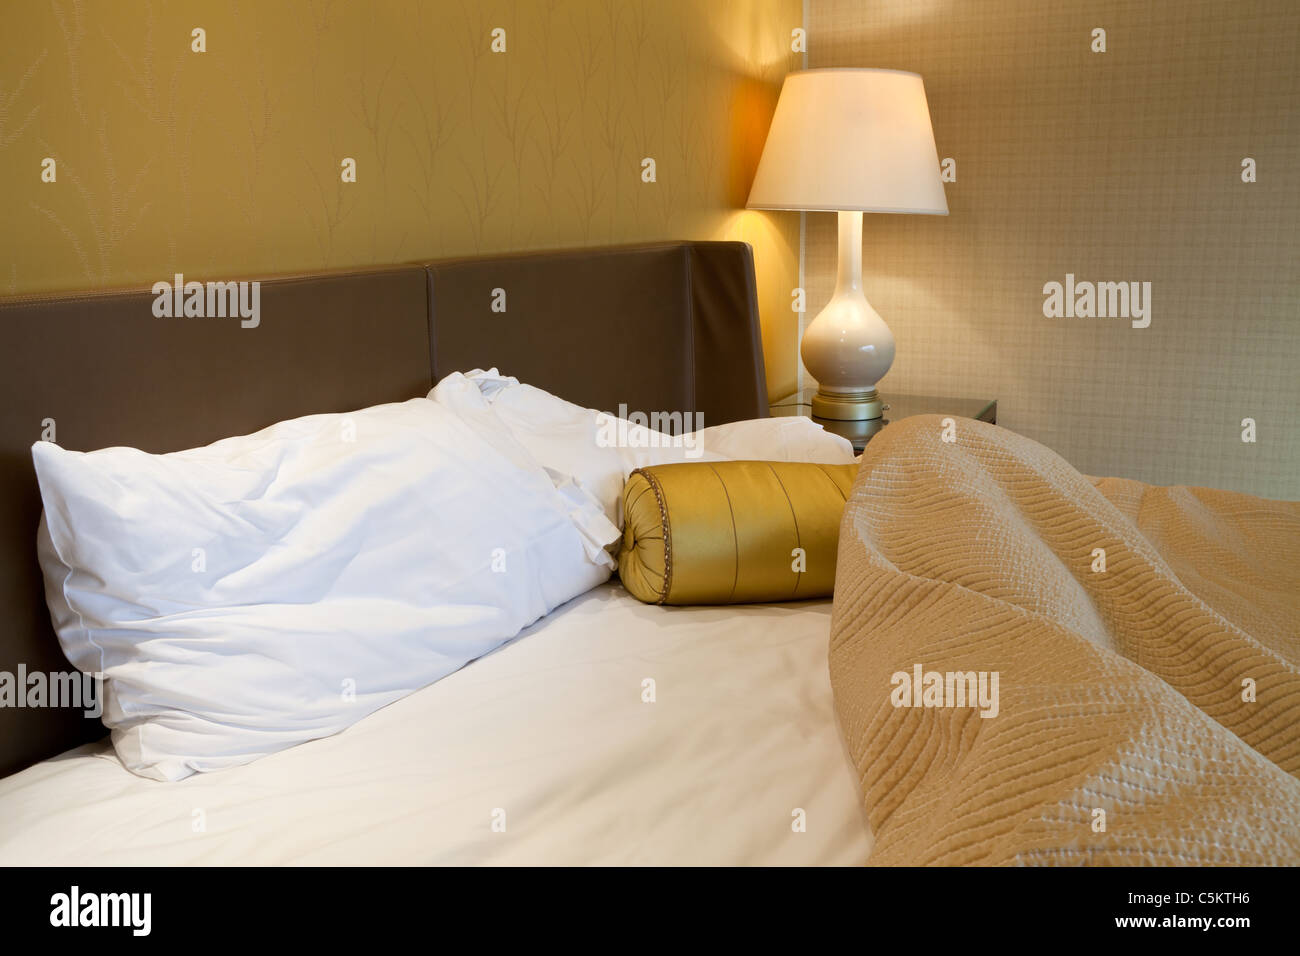 Messy king sized bed with pillow and quilt cover - Stock Image